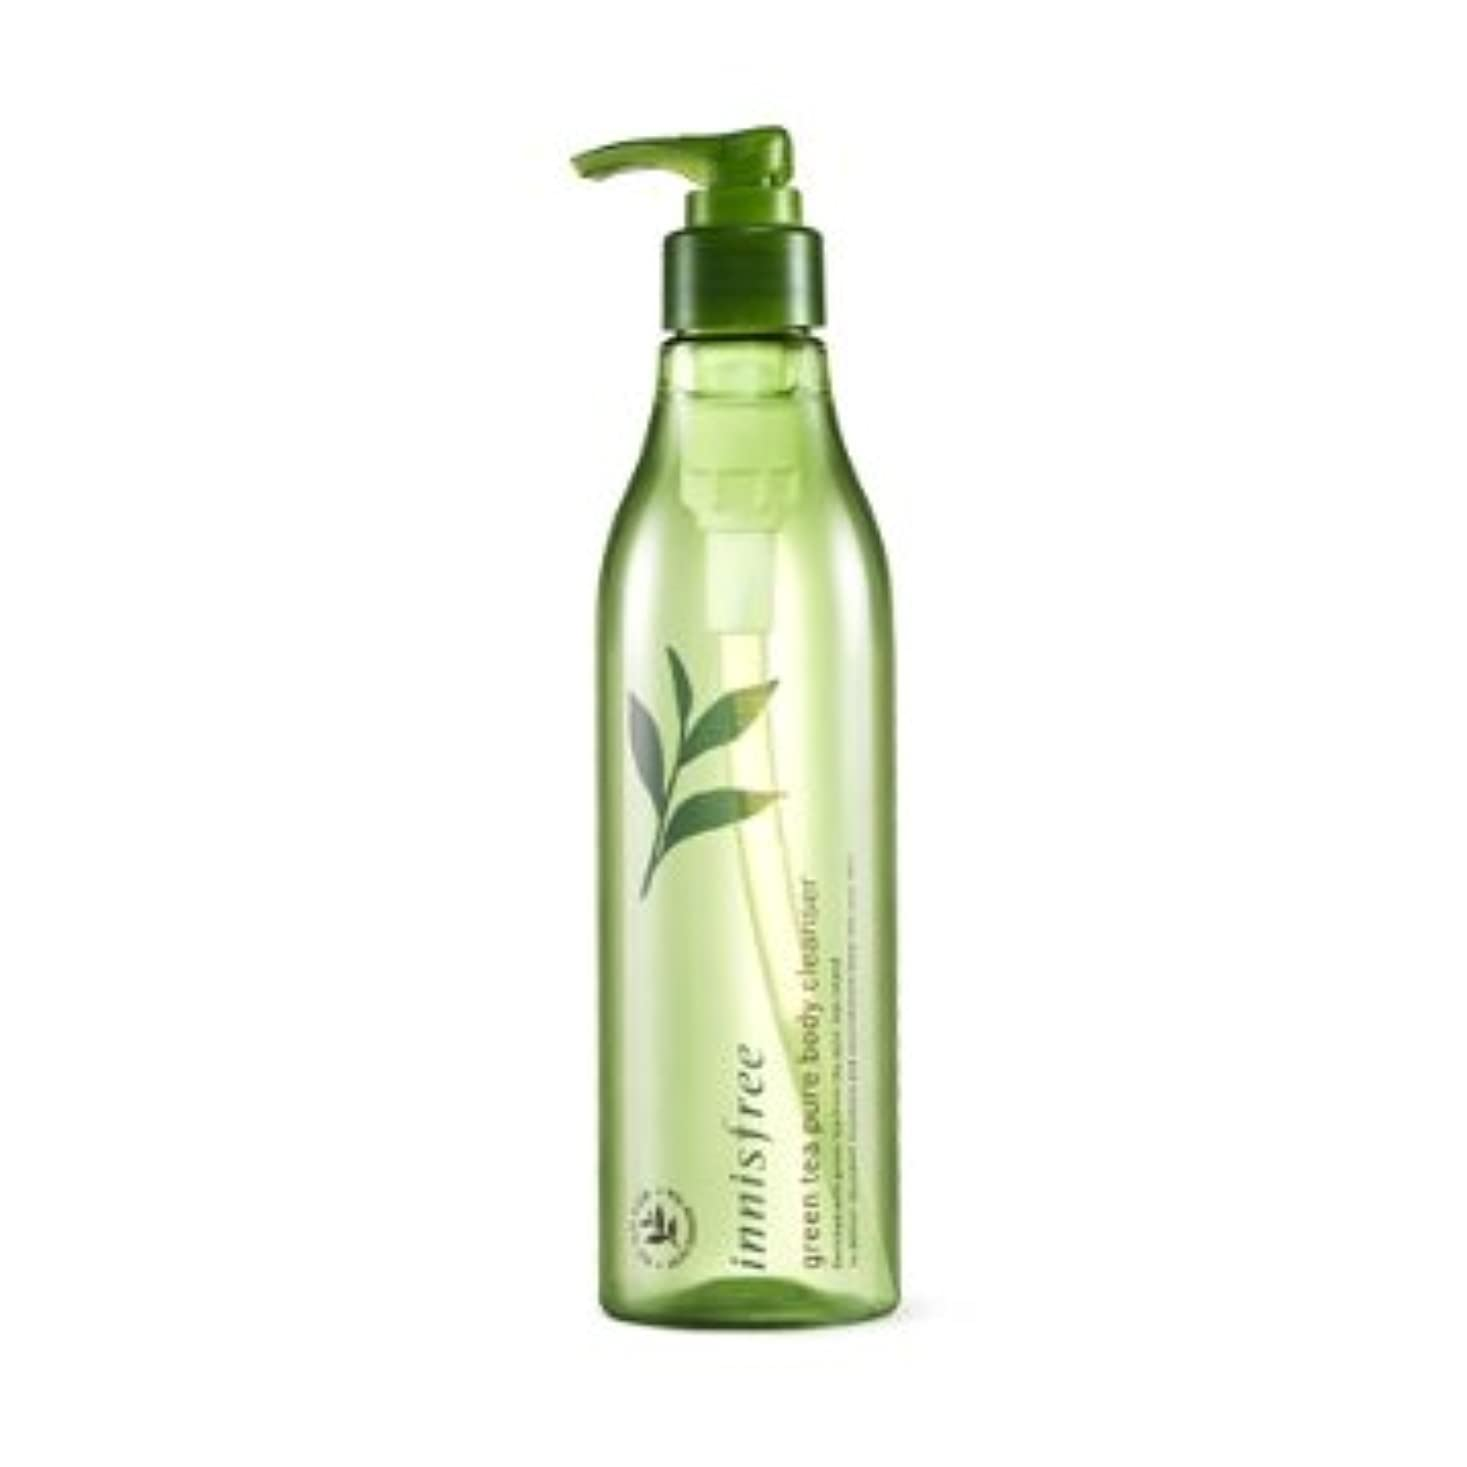 管理極端なサンダー【イニスフリー】Innisfree green tea pure body cleanser - 300ml (韓国直送品) (SHOPPINGINSTAGRAM)